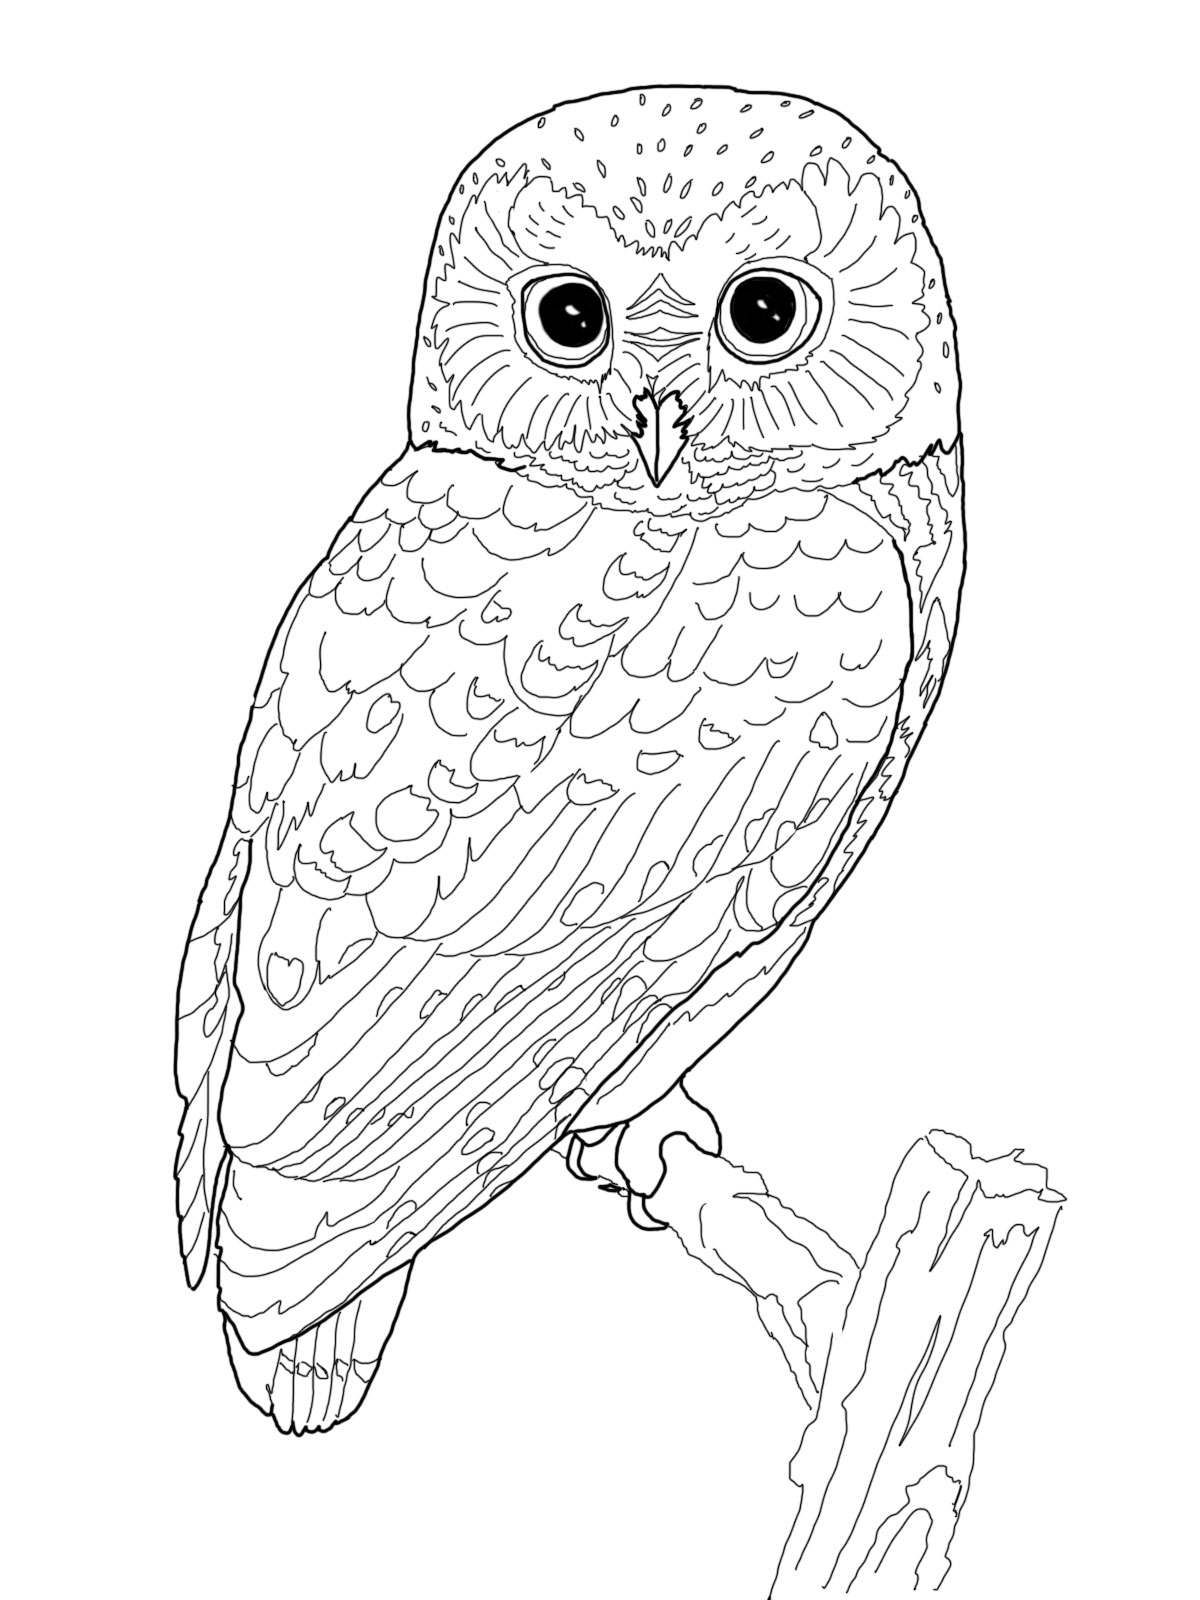 Owl Coloring Pages For Adults Free Detailed Owl Coloring Pages Owl Coloring Pages Animal Coloring Pages Detailed Coloring Pages